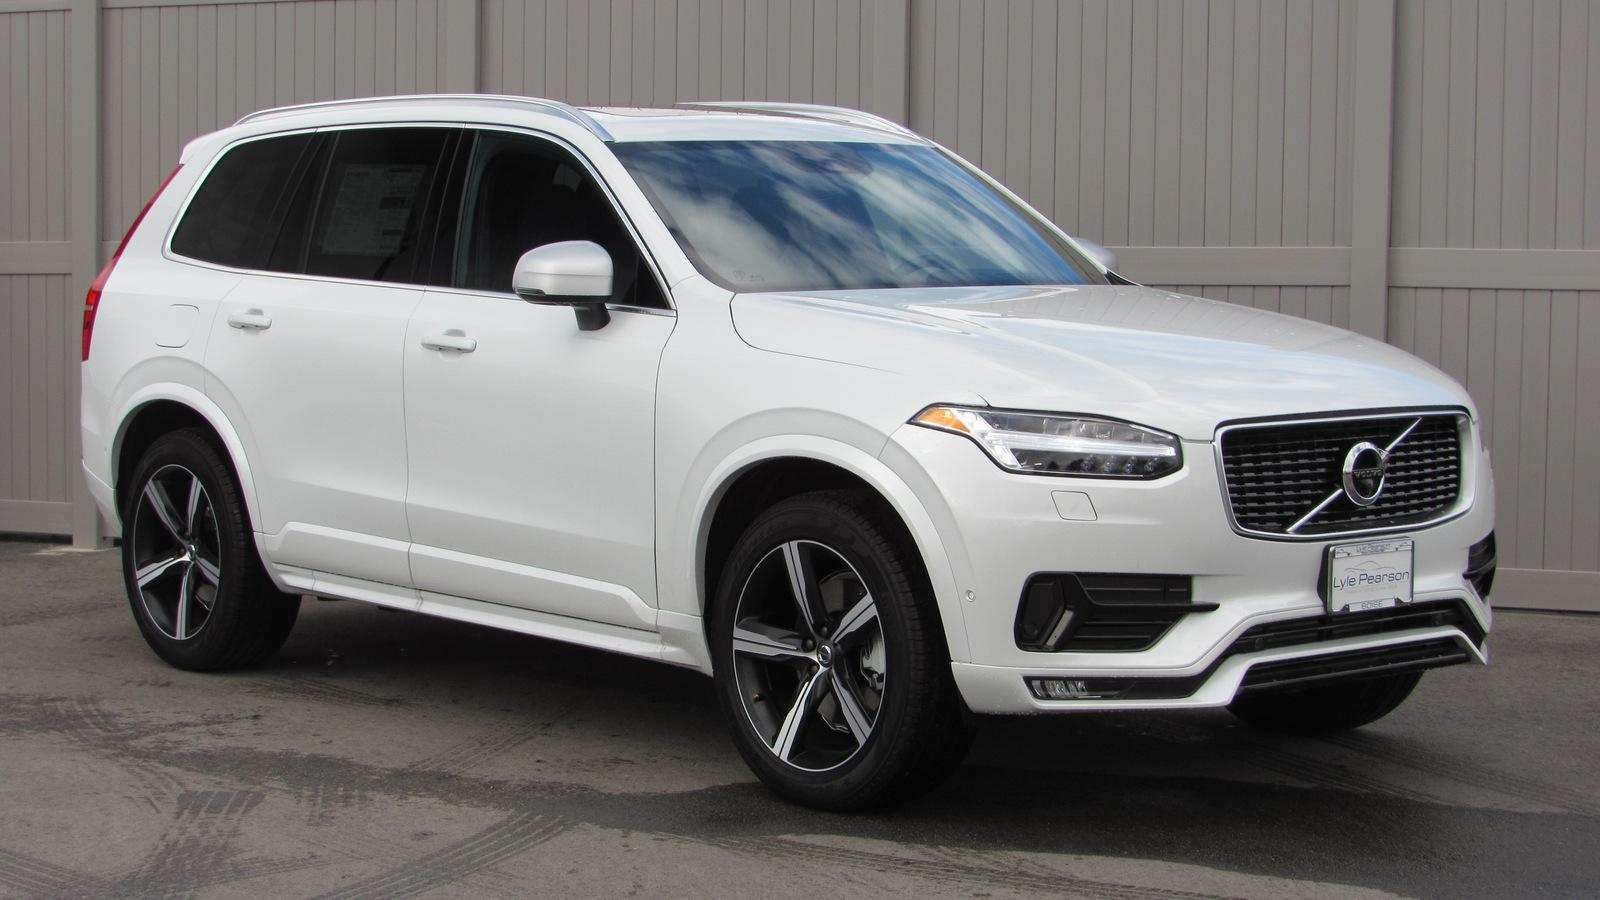 40 The 2019 Volvo XC90 Research New